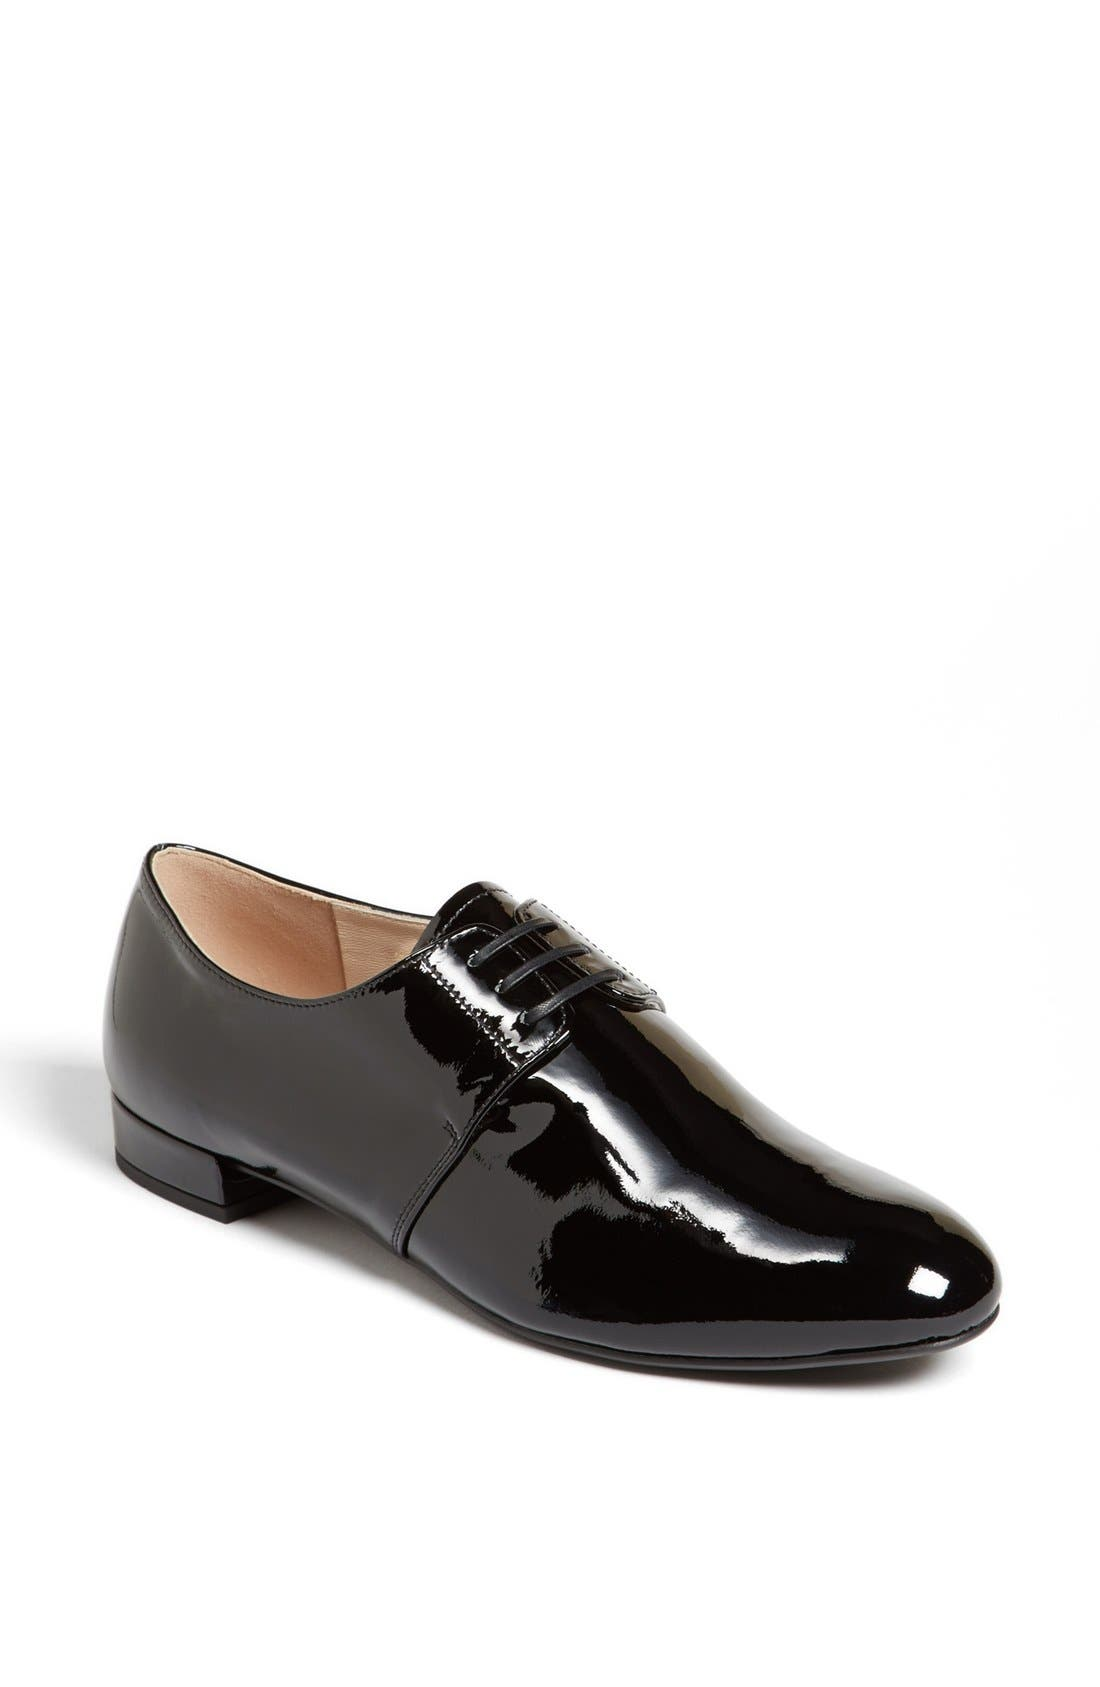 Alternate Image 1 Selected - Prada Oxford Flat